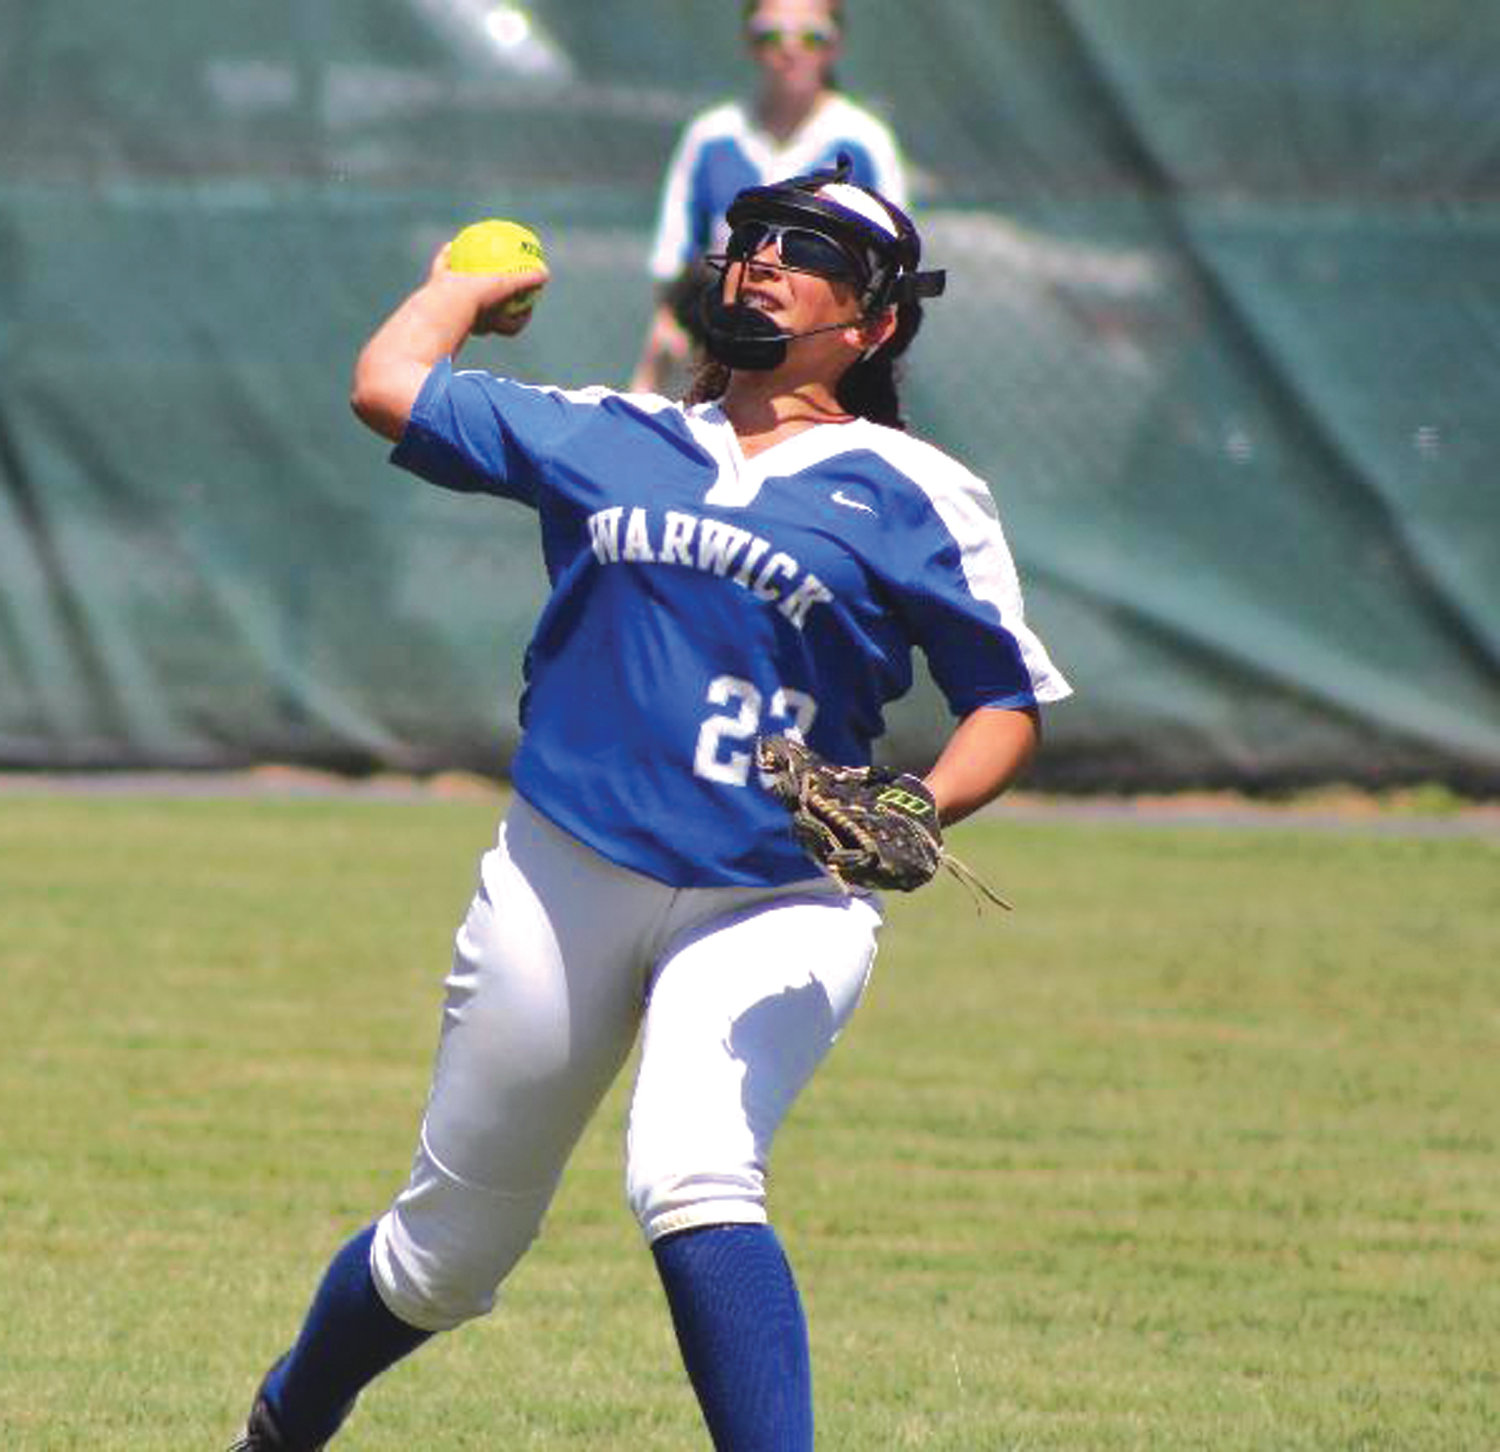 THE THROW TO HOME: Vets' Alayna Medina throws to home in the state championship.